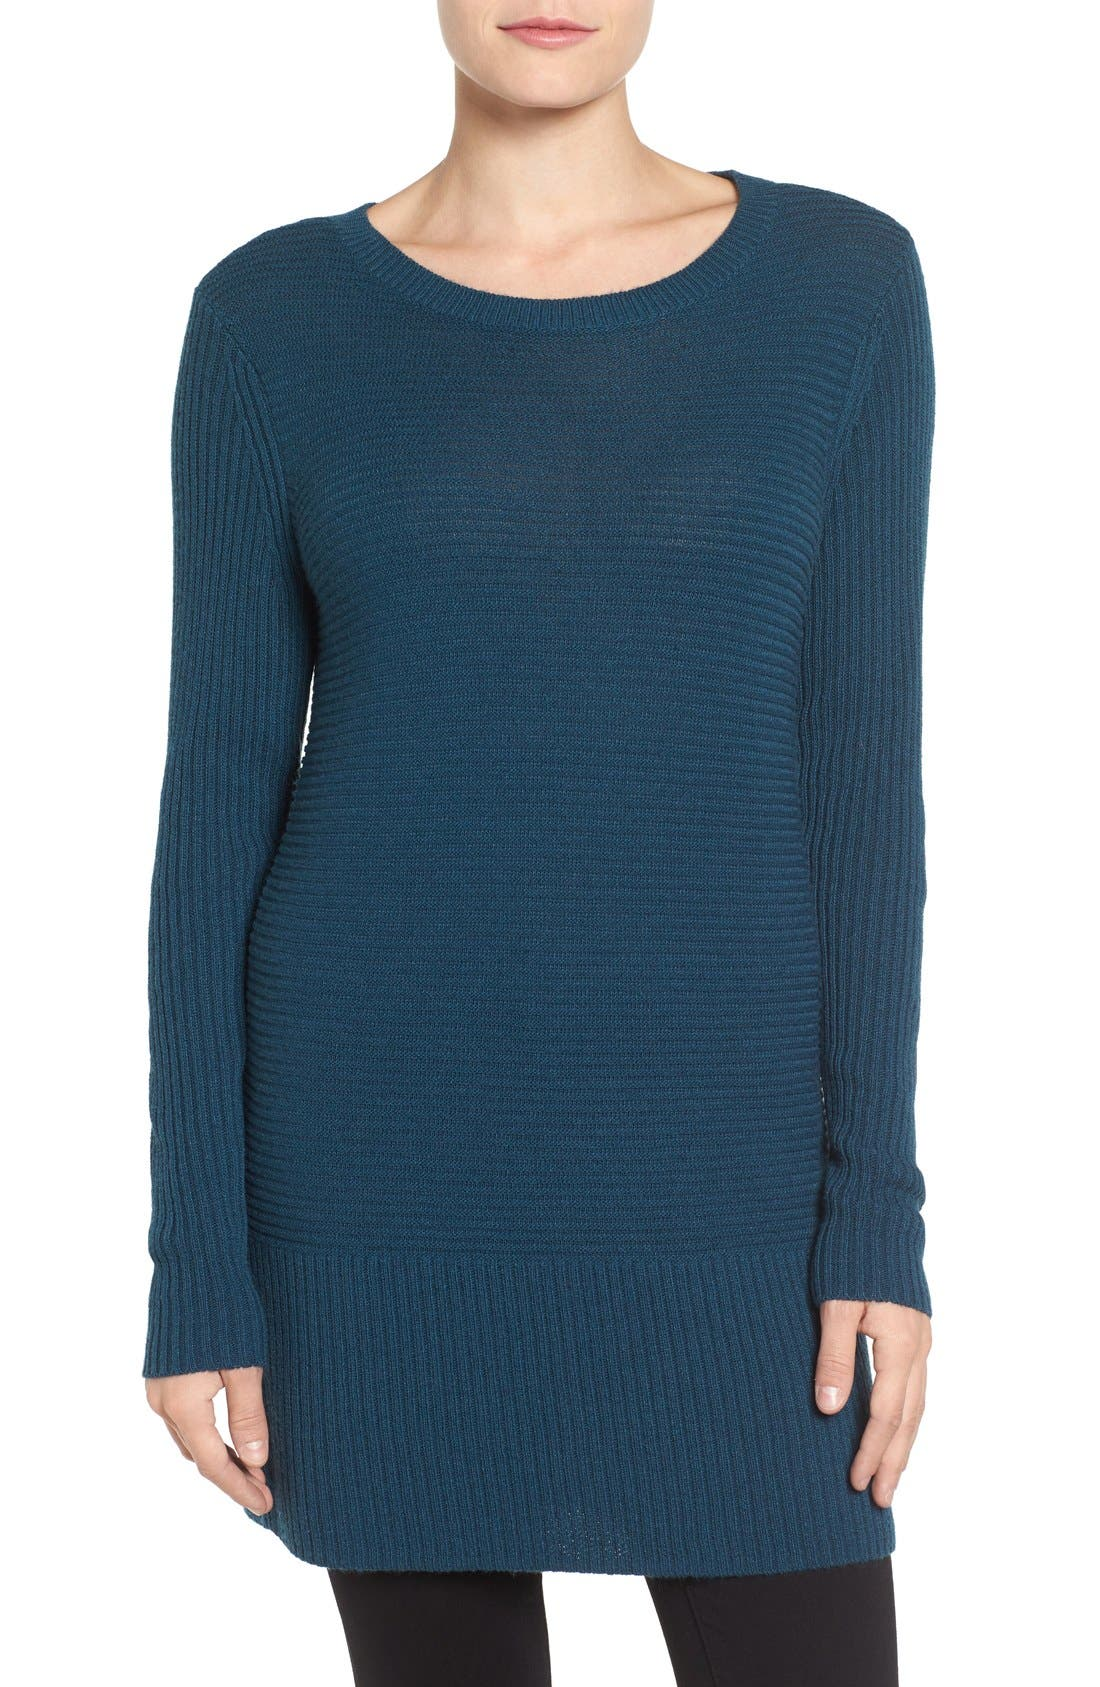 Alternate Image 1 Selected - Halogen® Rib Knit Tunic (Regular & Petite)